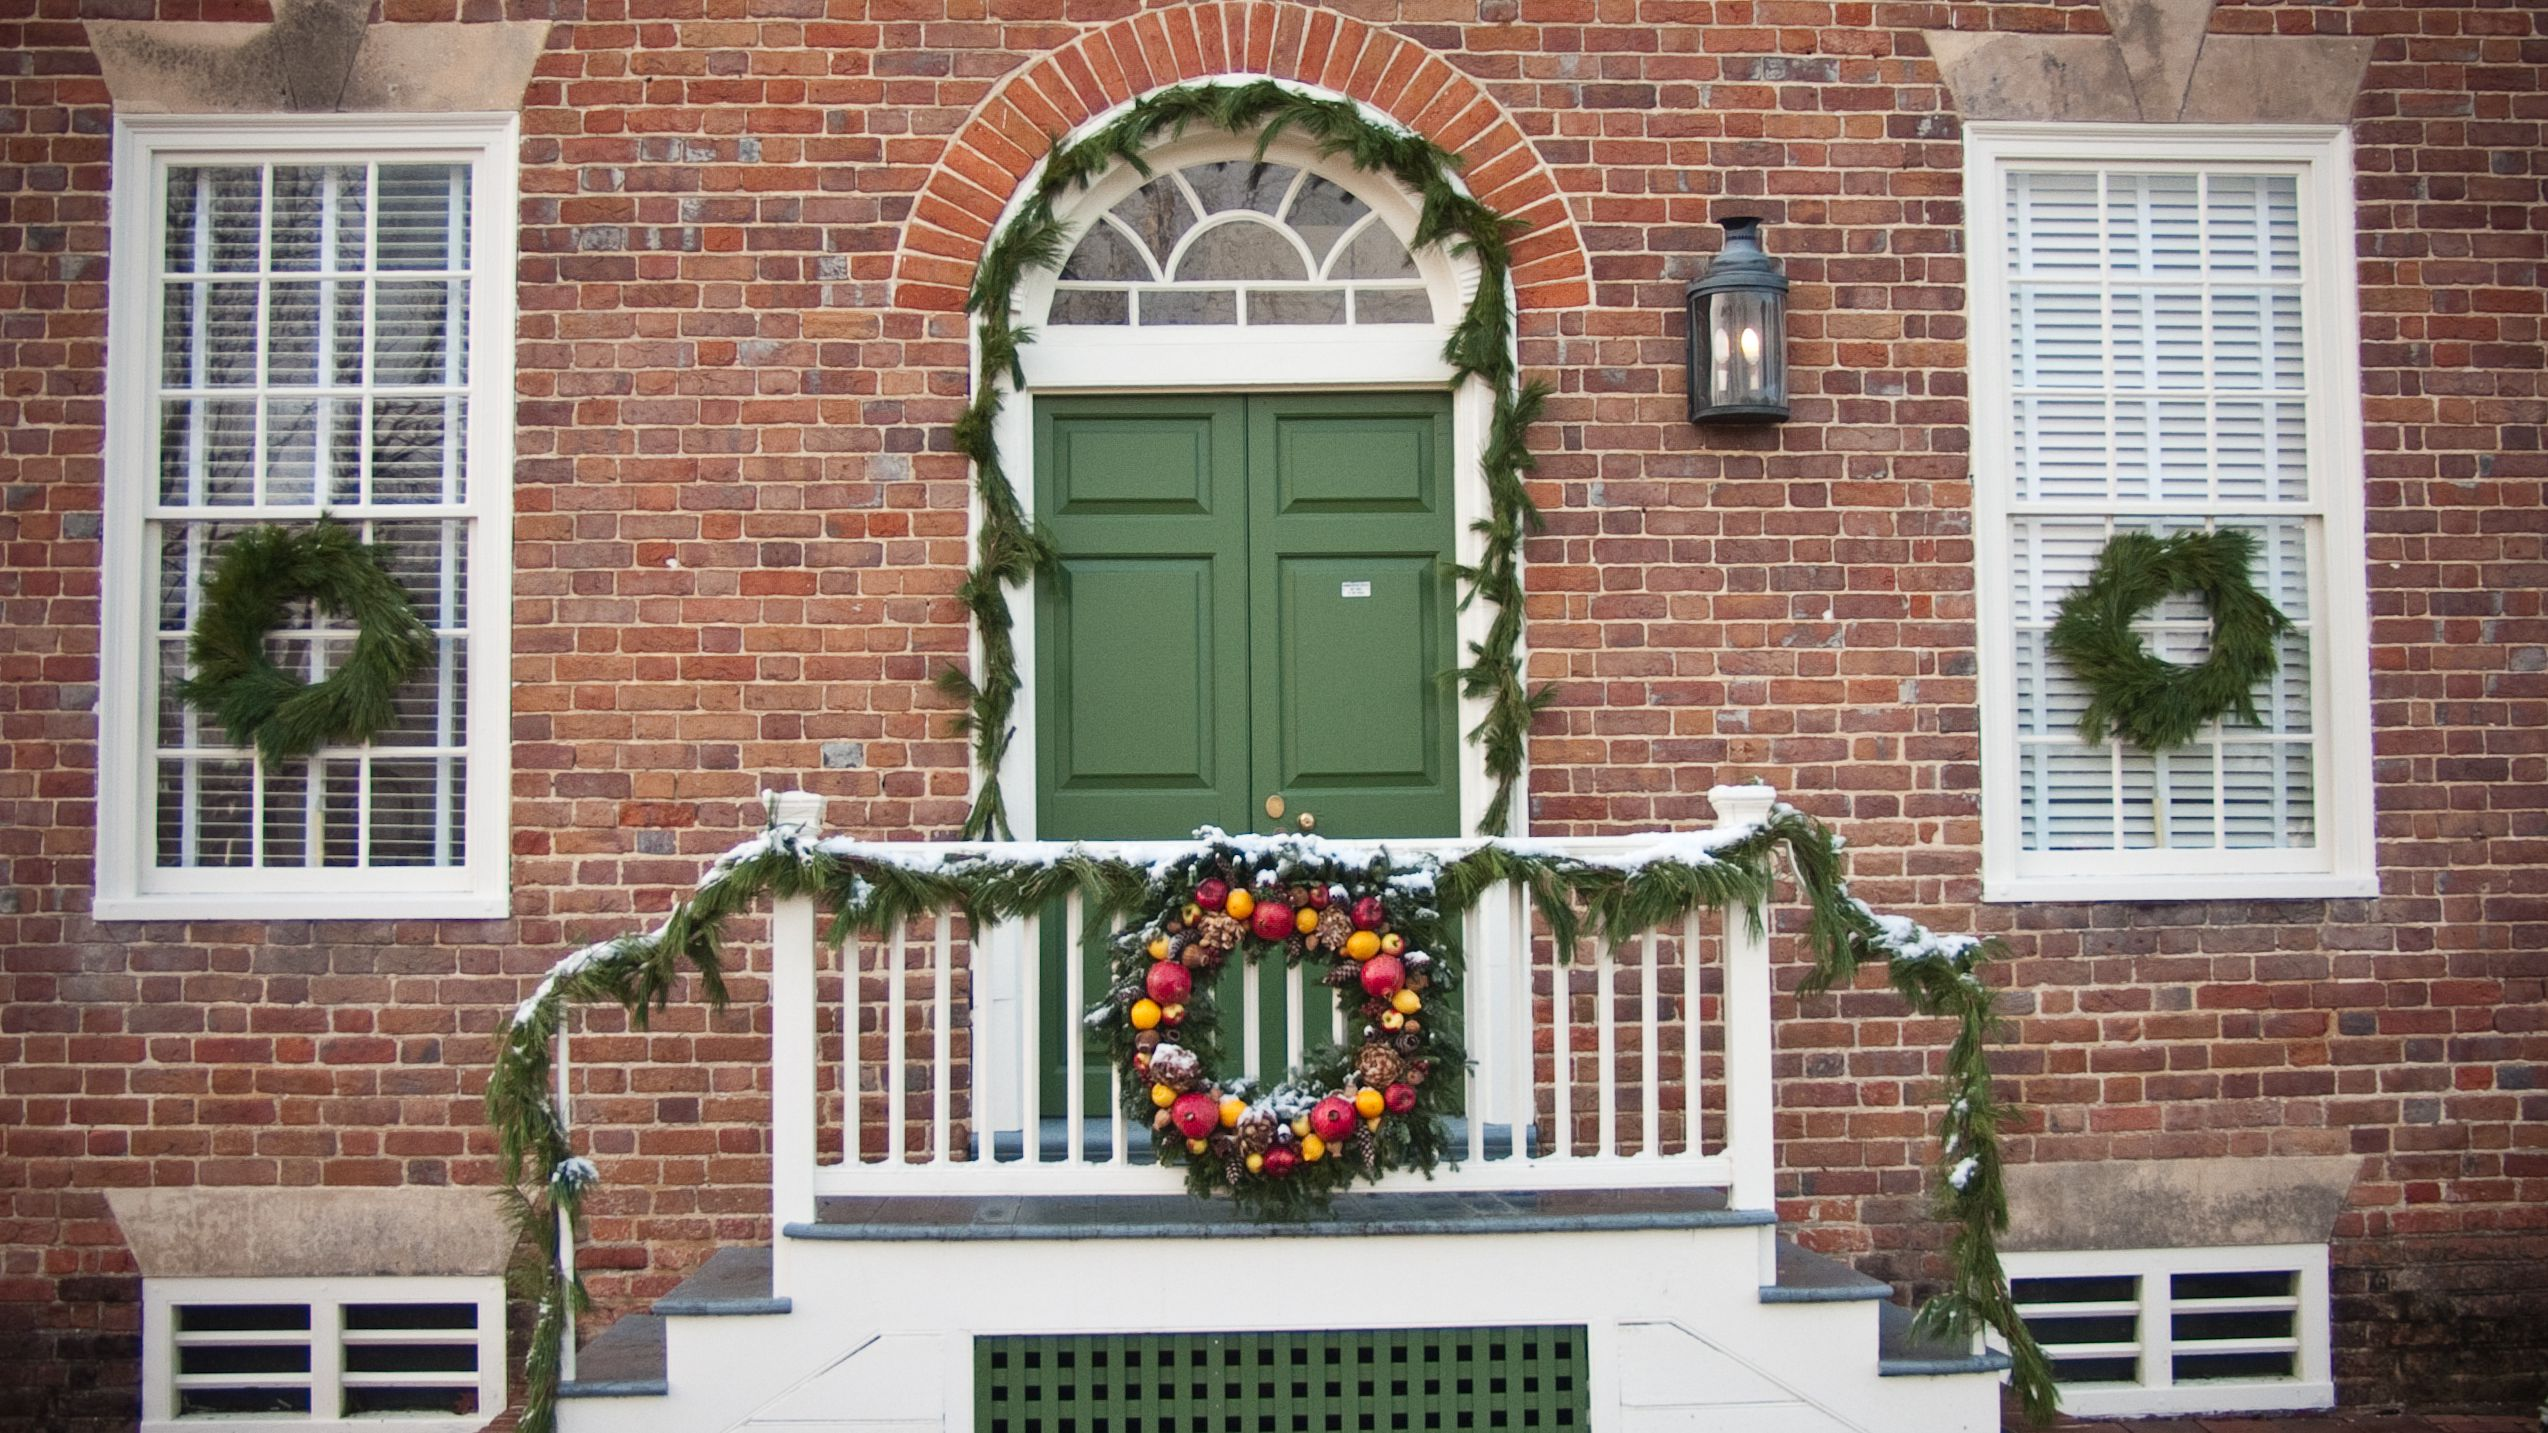 Best Places To Stay In Williamsburg Va For Christmas 2020 Christmas 2020 in Colonial Williamsburg